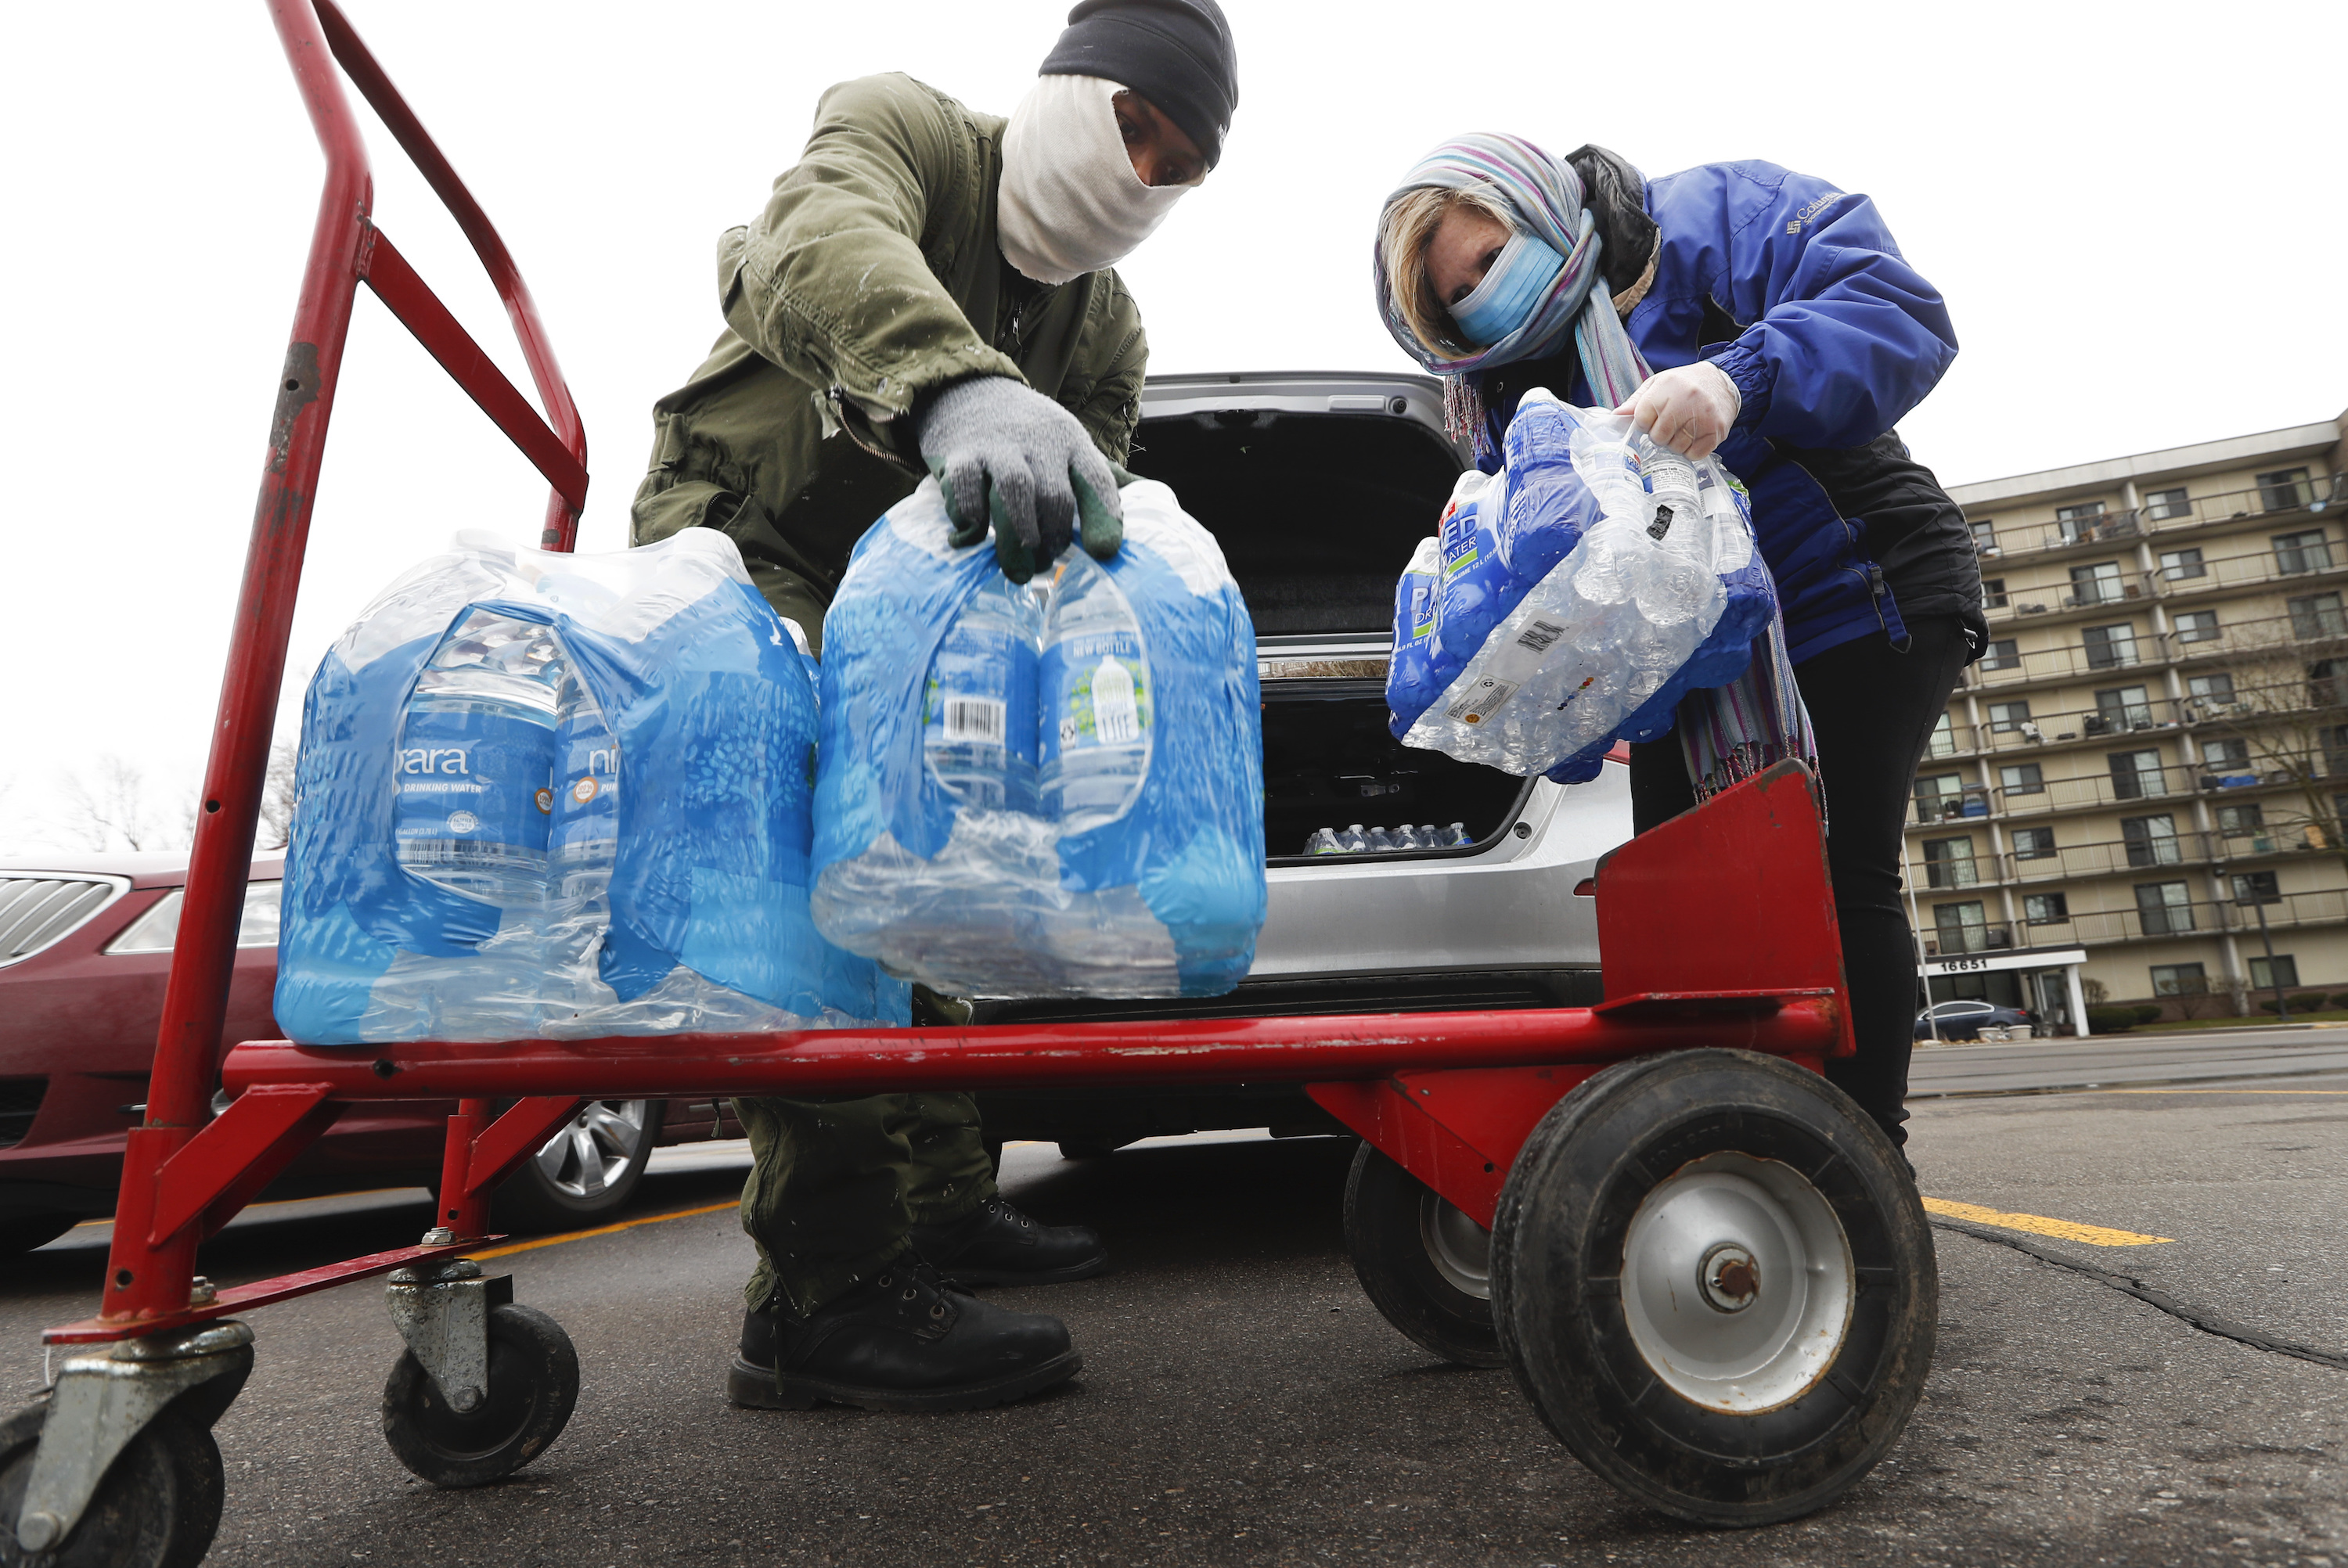 Two people wearing face masks place cases of bottled water from a van onto a dolly.